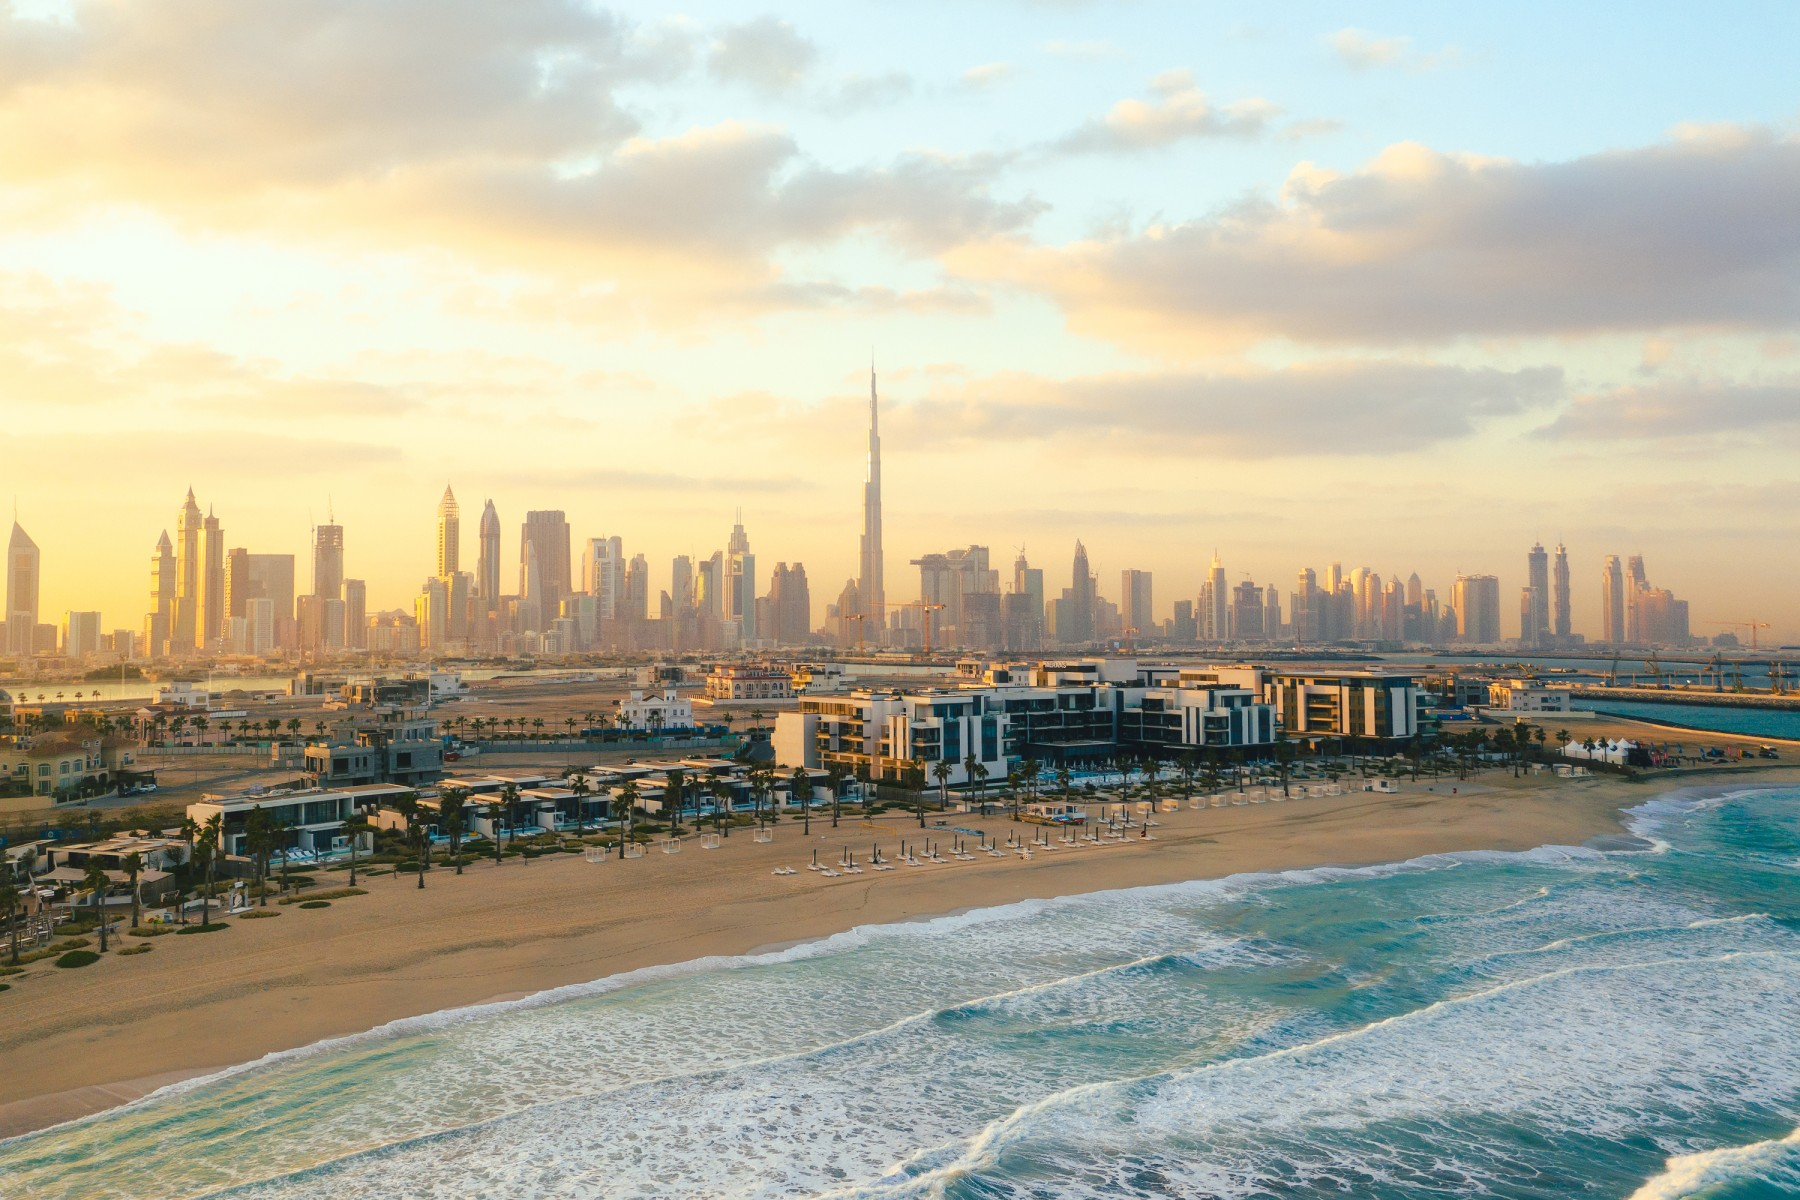 Emirates and Dubai is sending out the clear message that tourists are welcome to enjoy the city's many attractions, with various measures put in place for safe visits and smooth travels.